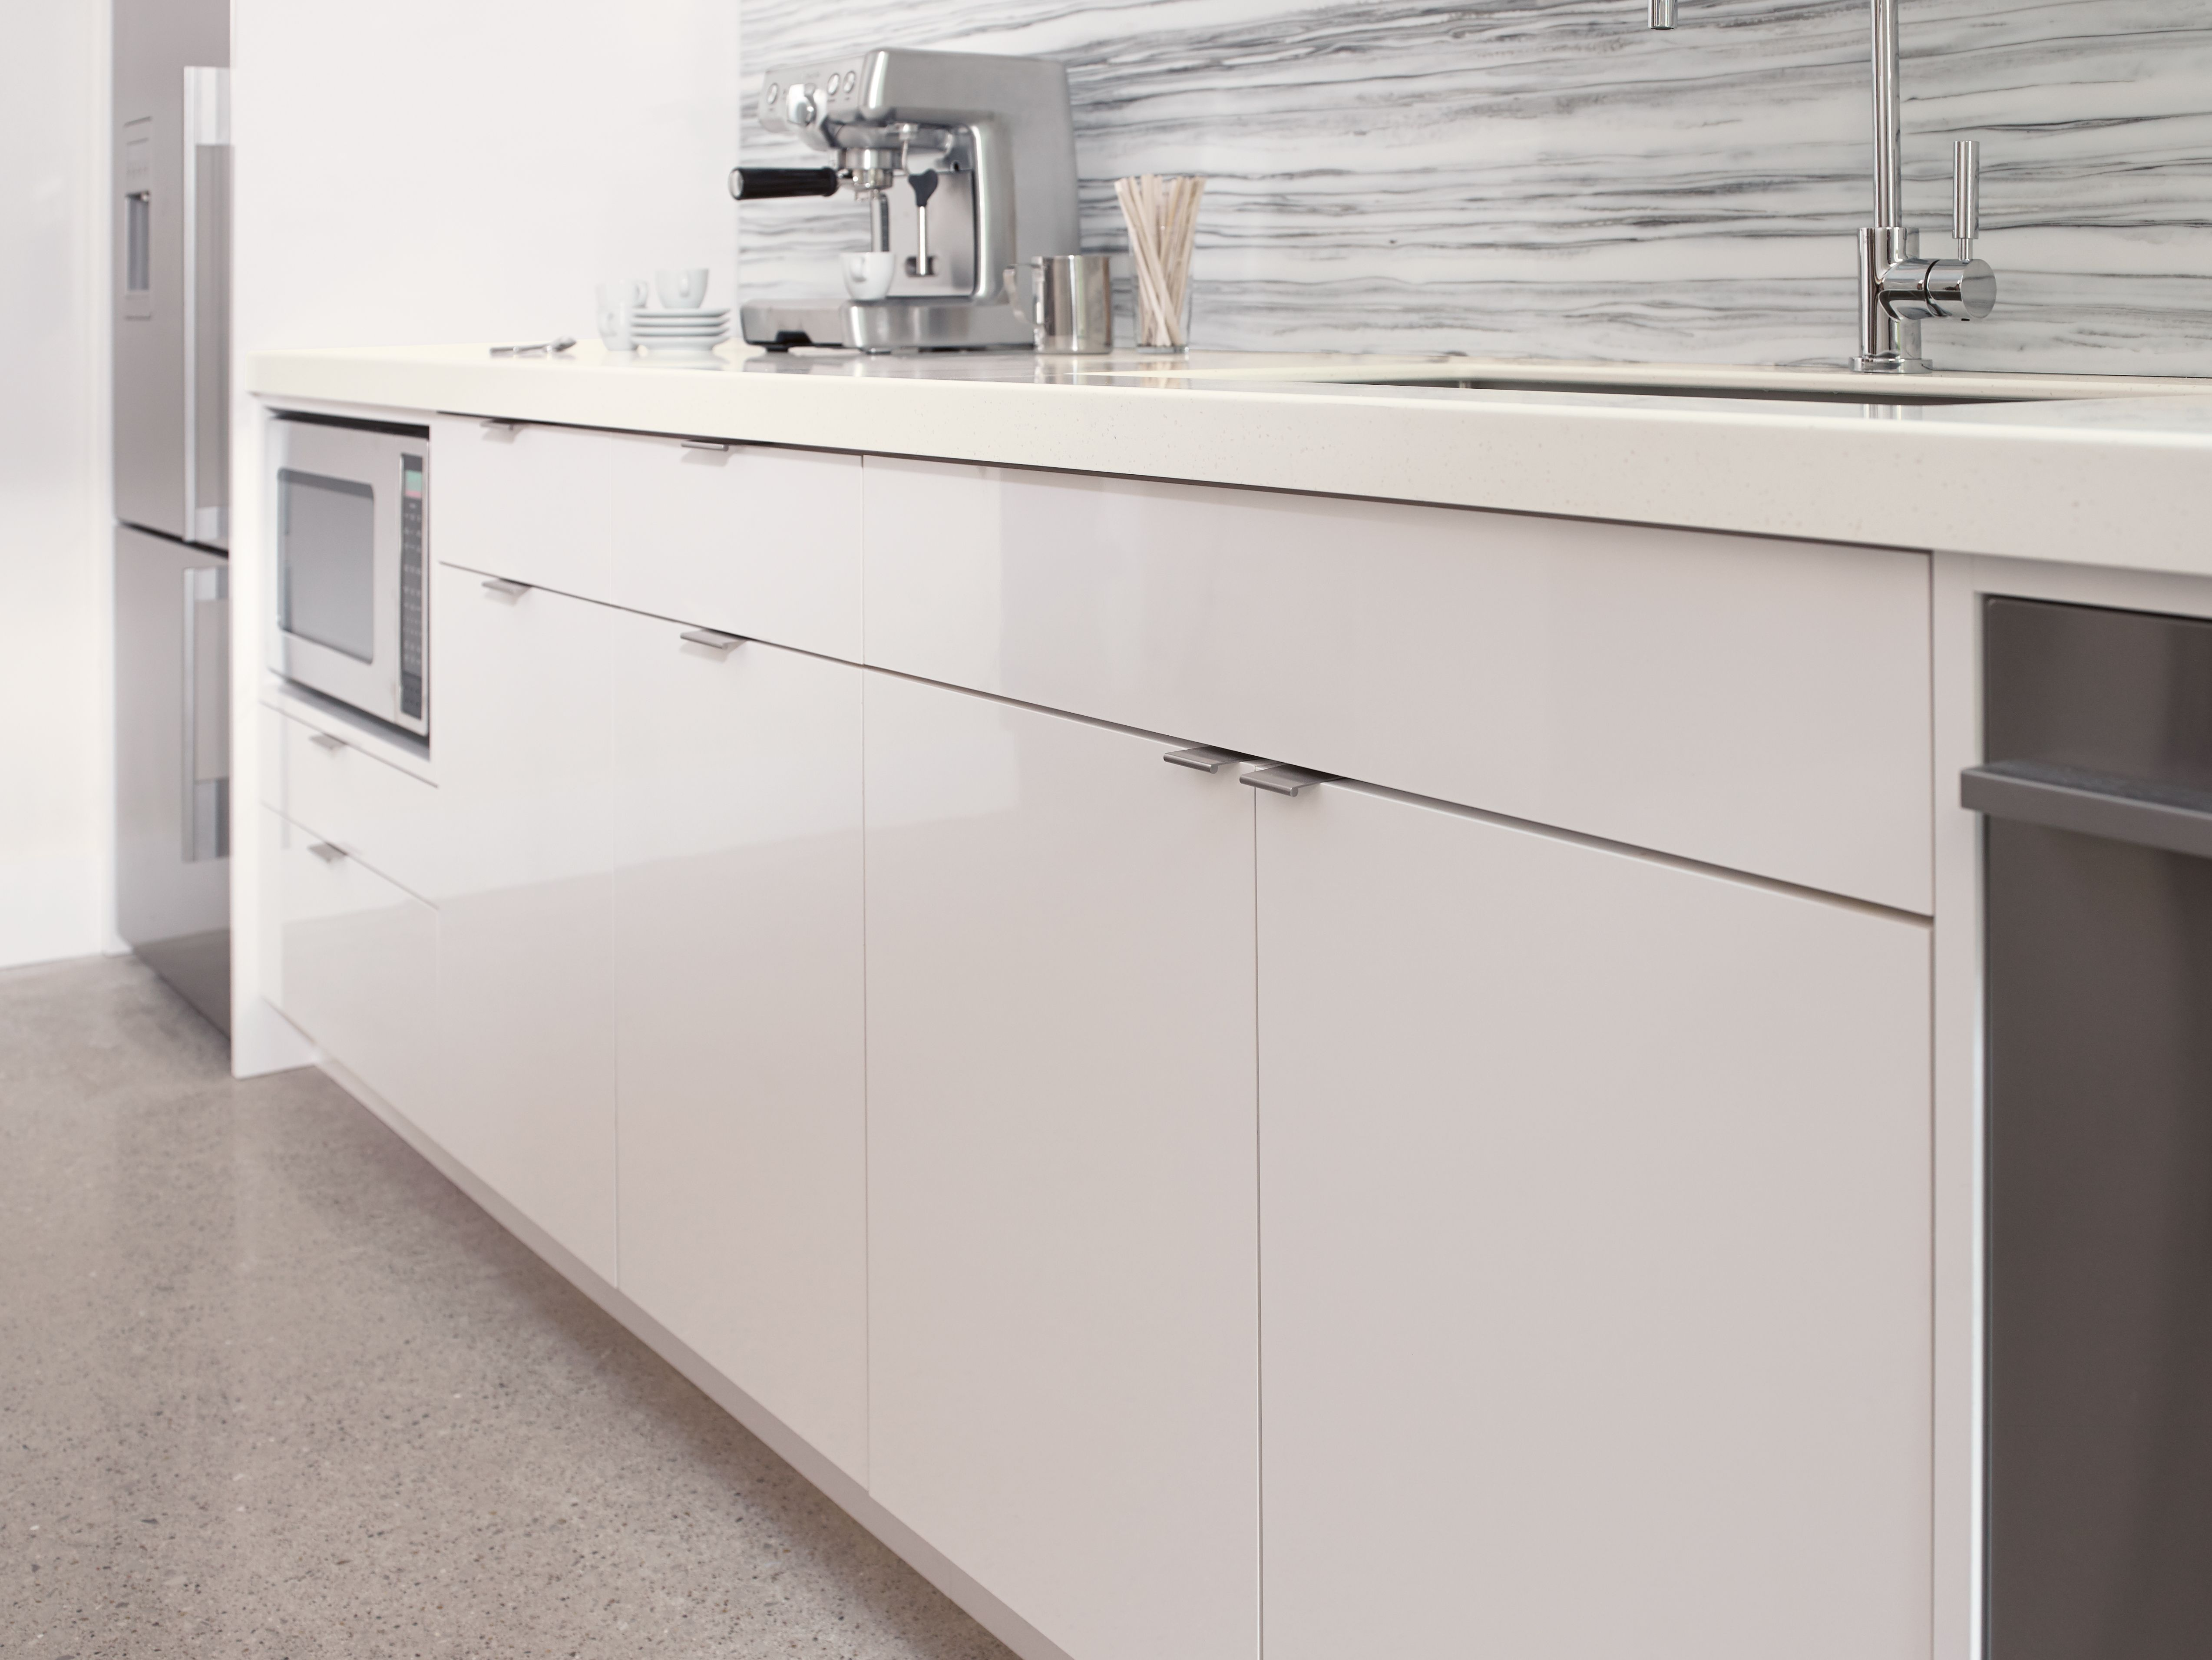 159 best images about trend white on pinterest cabinets modern kitchens and california beach houses - Color Core Laminate